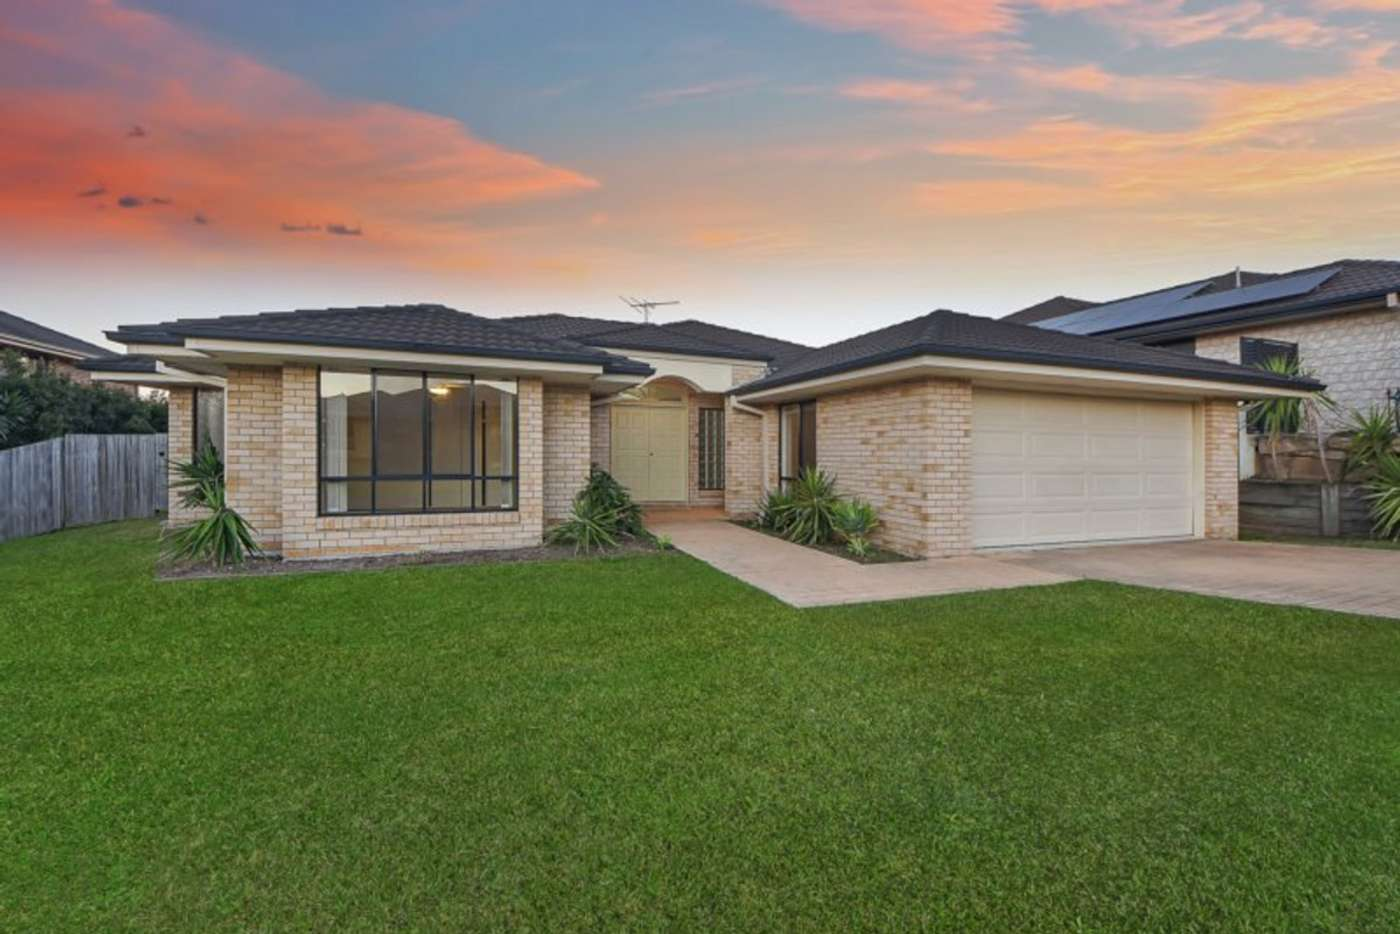 Main view of Homely house listing, 21 Hampstead Outlook, Murrumba Downs QLD 4503